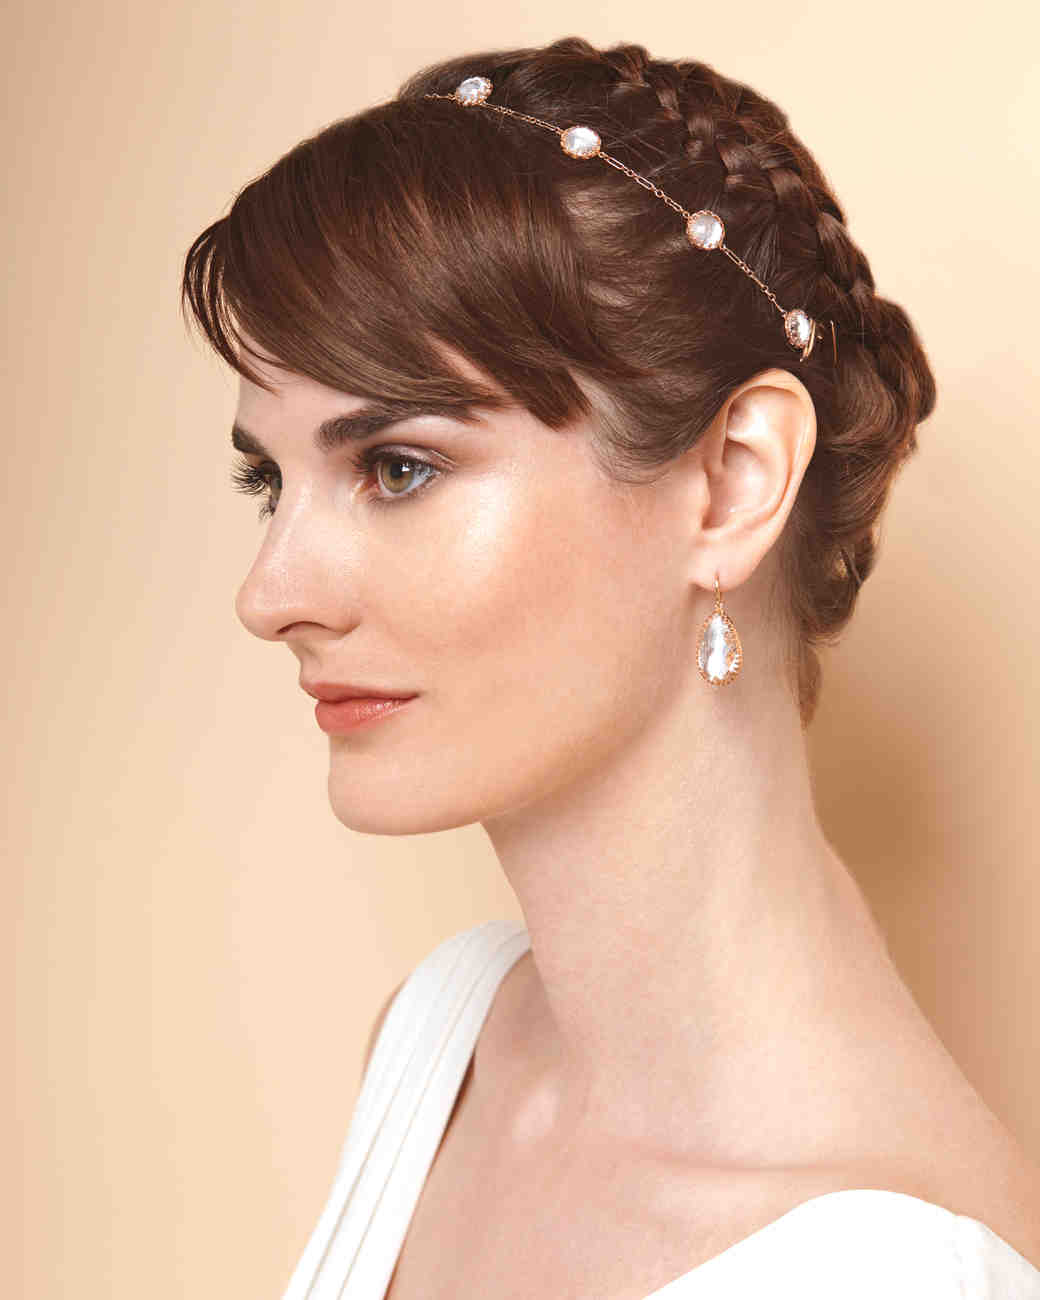 Wedding Styles: 4 Ways To Wear A Short Hairstyle On Your Wedding Day